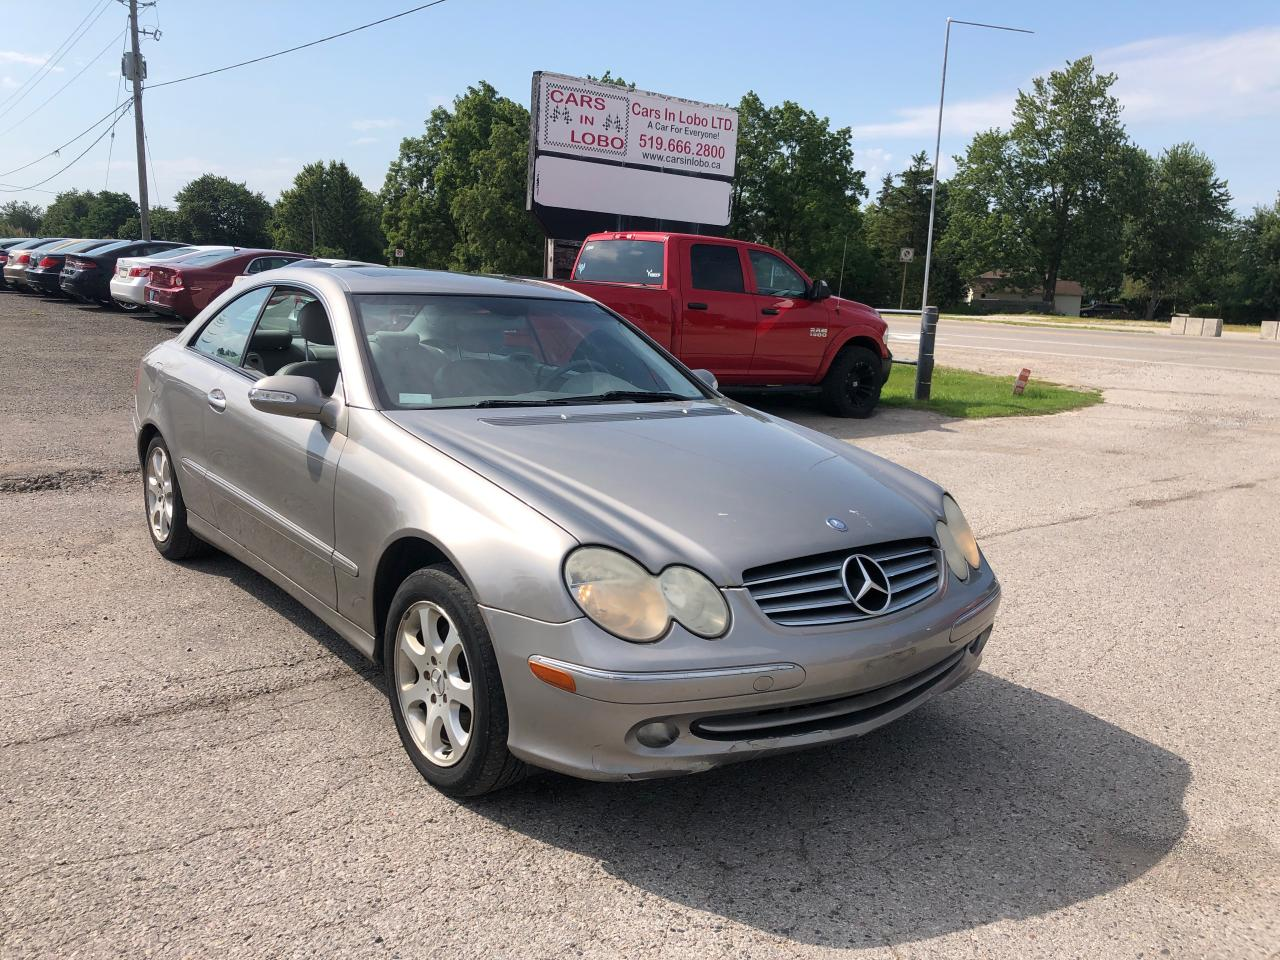 2004 Mercedes-Benz CLK320 3.2L